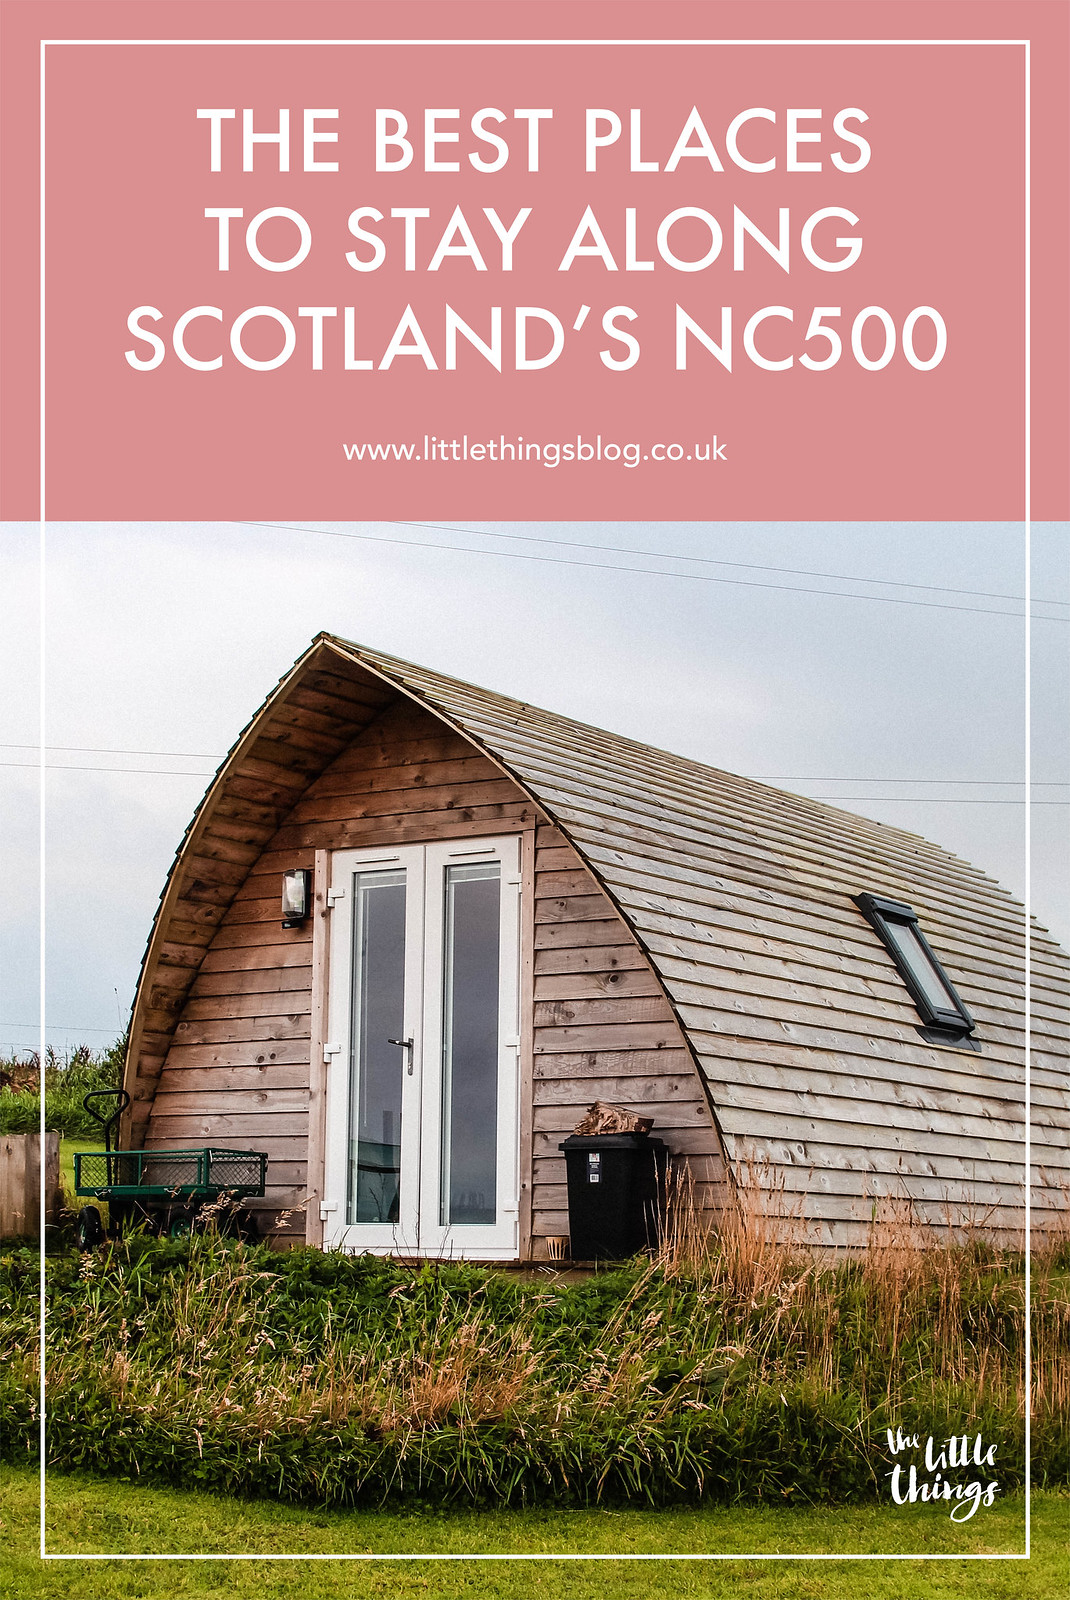 The best places to stay along Scotland's NC500 route